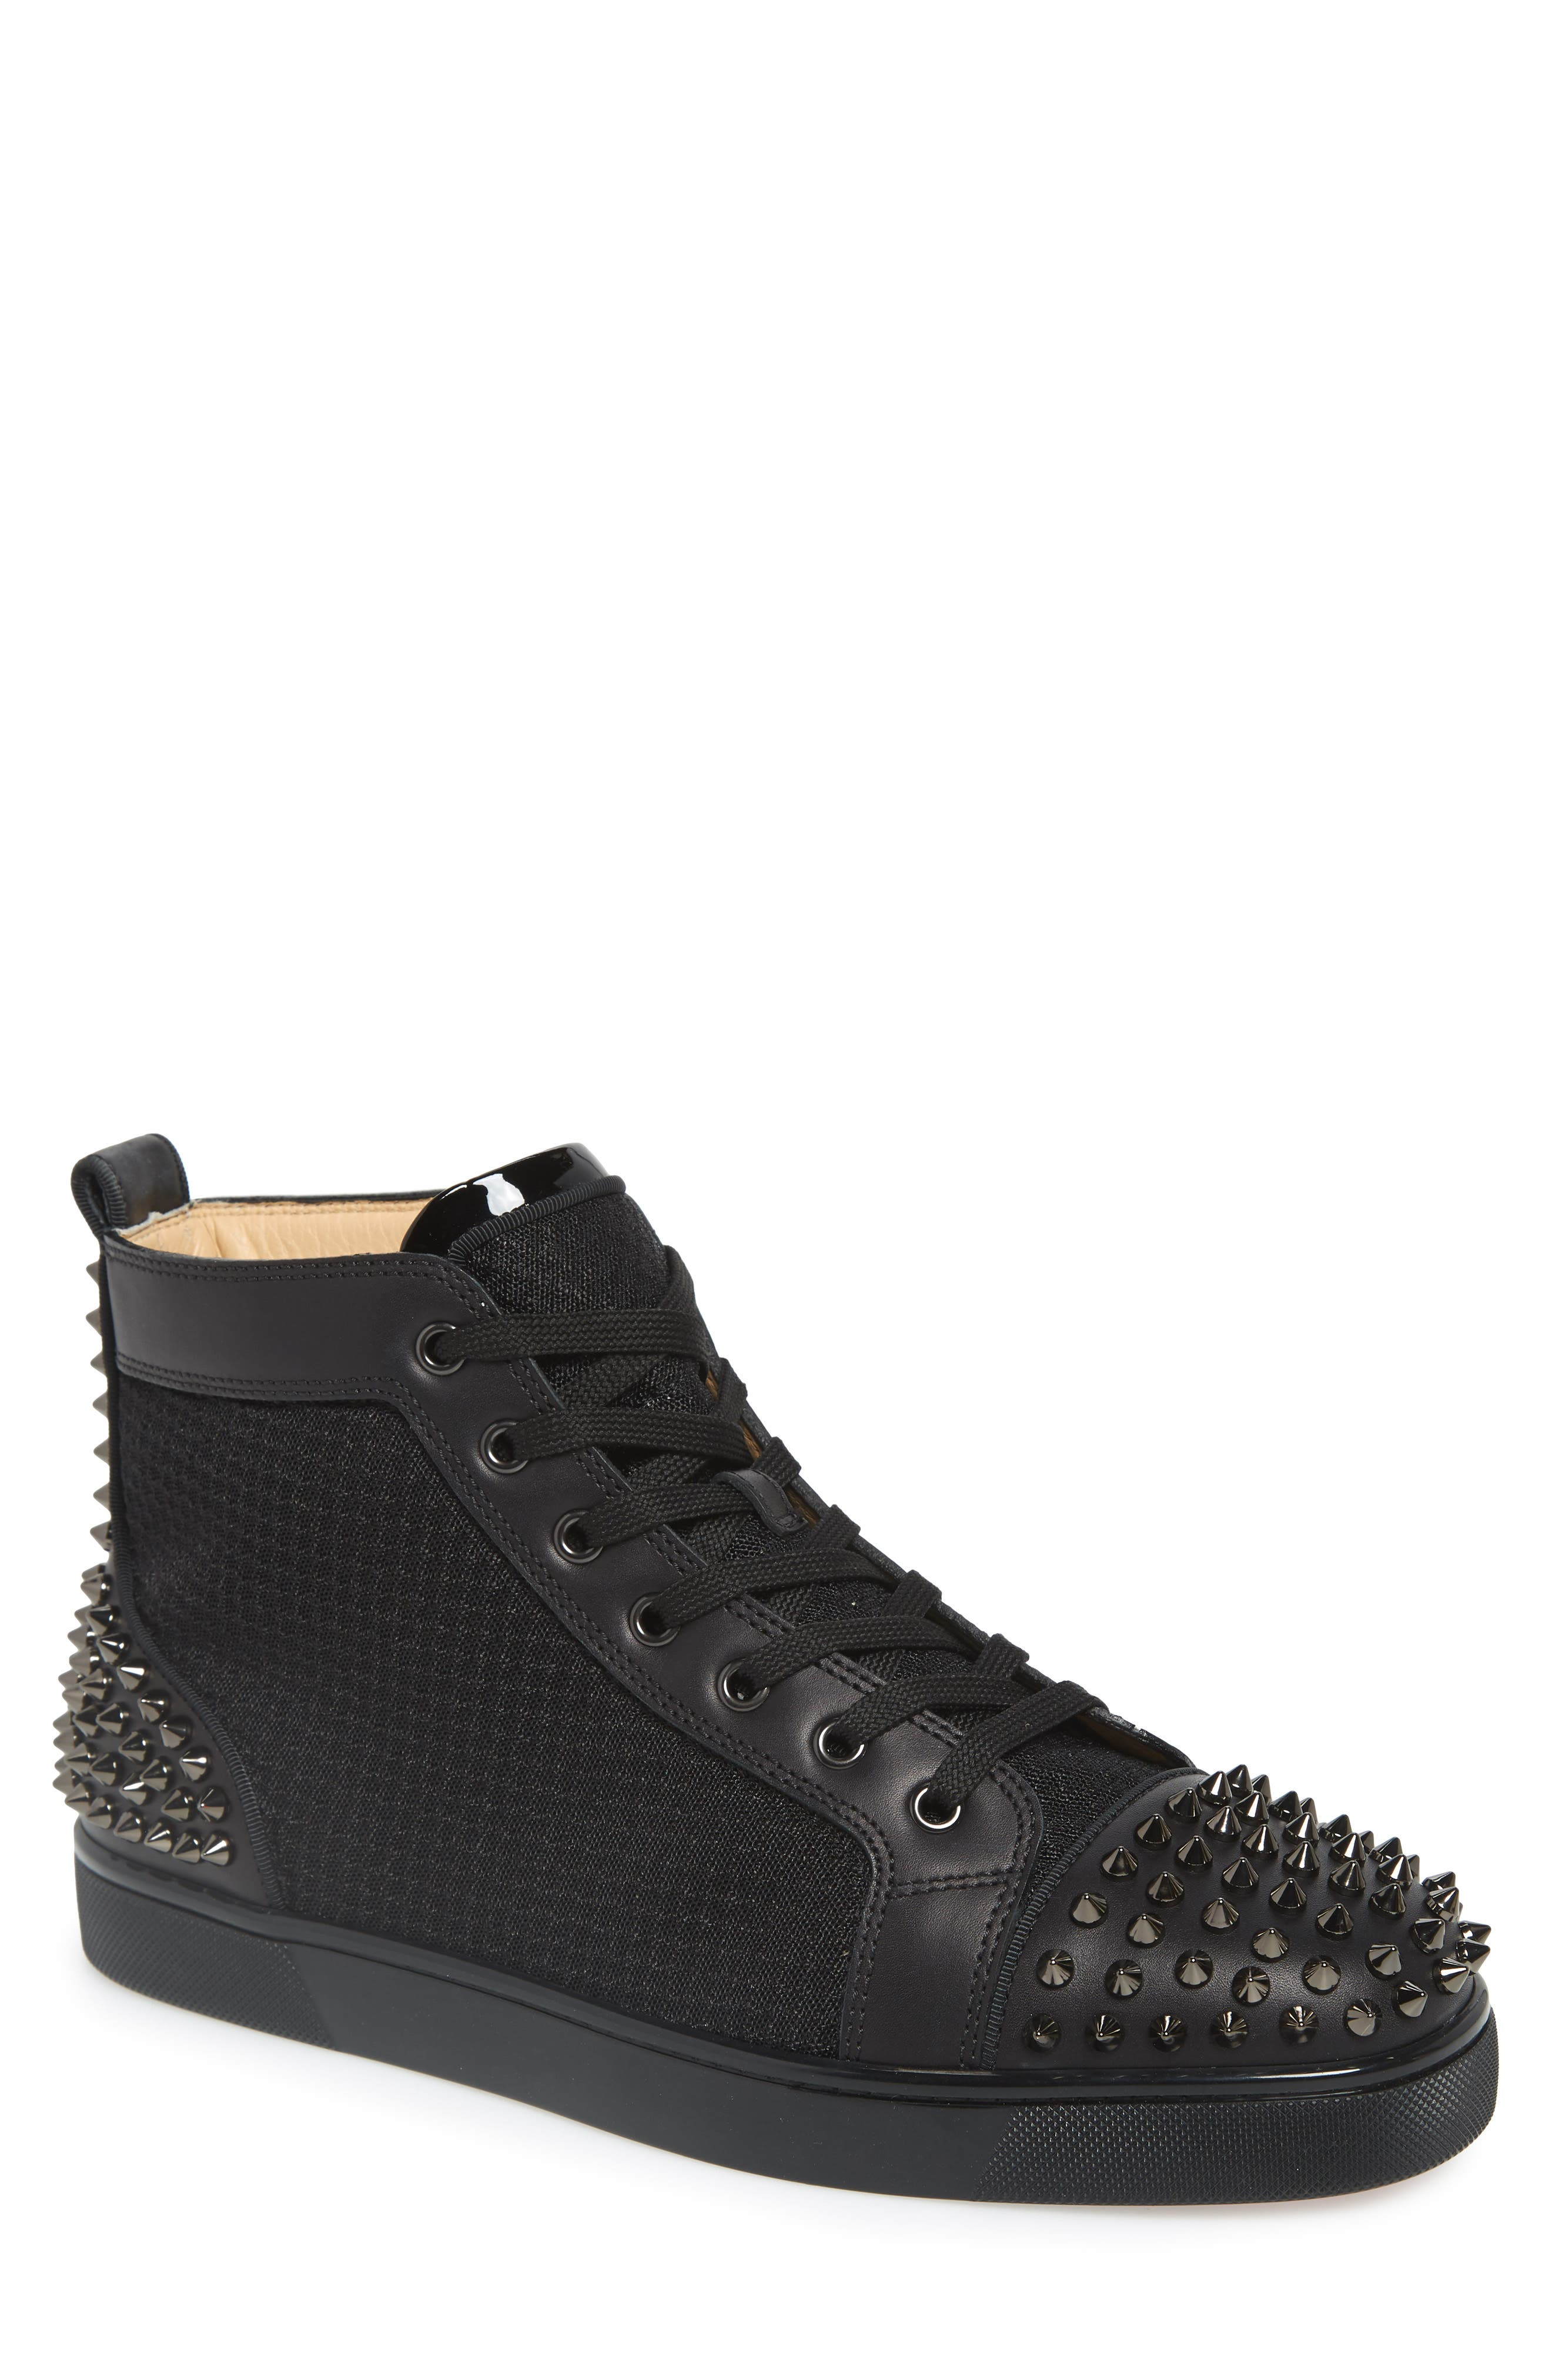 AC Lou Spikes 2 High Top Sneaker, Main, color, BLACK